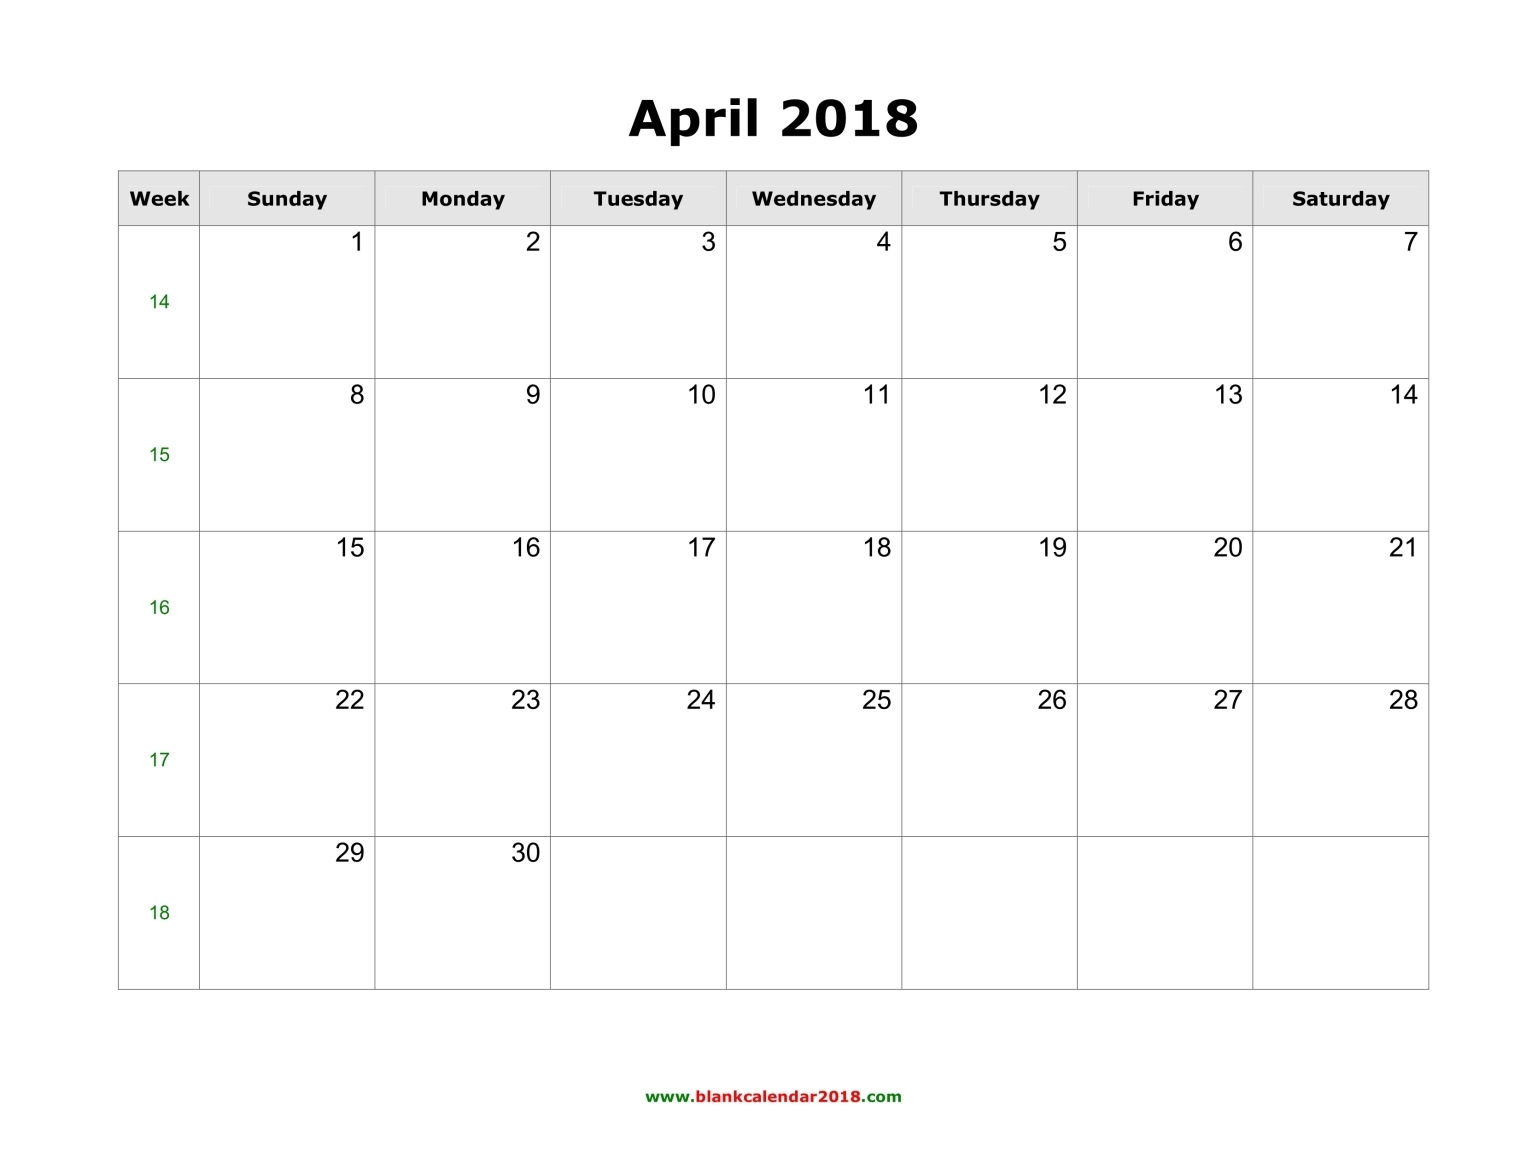 Blank Calendar Template April : Blank calendar for april